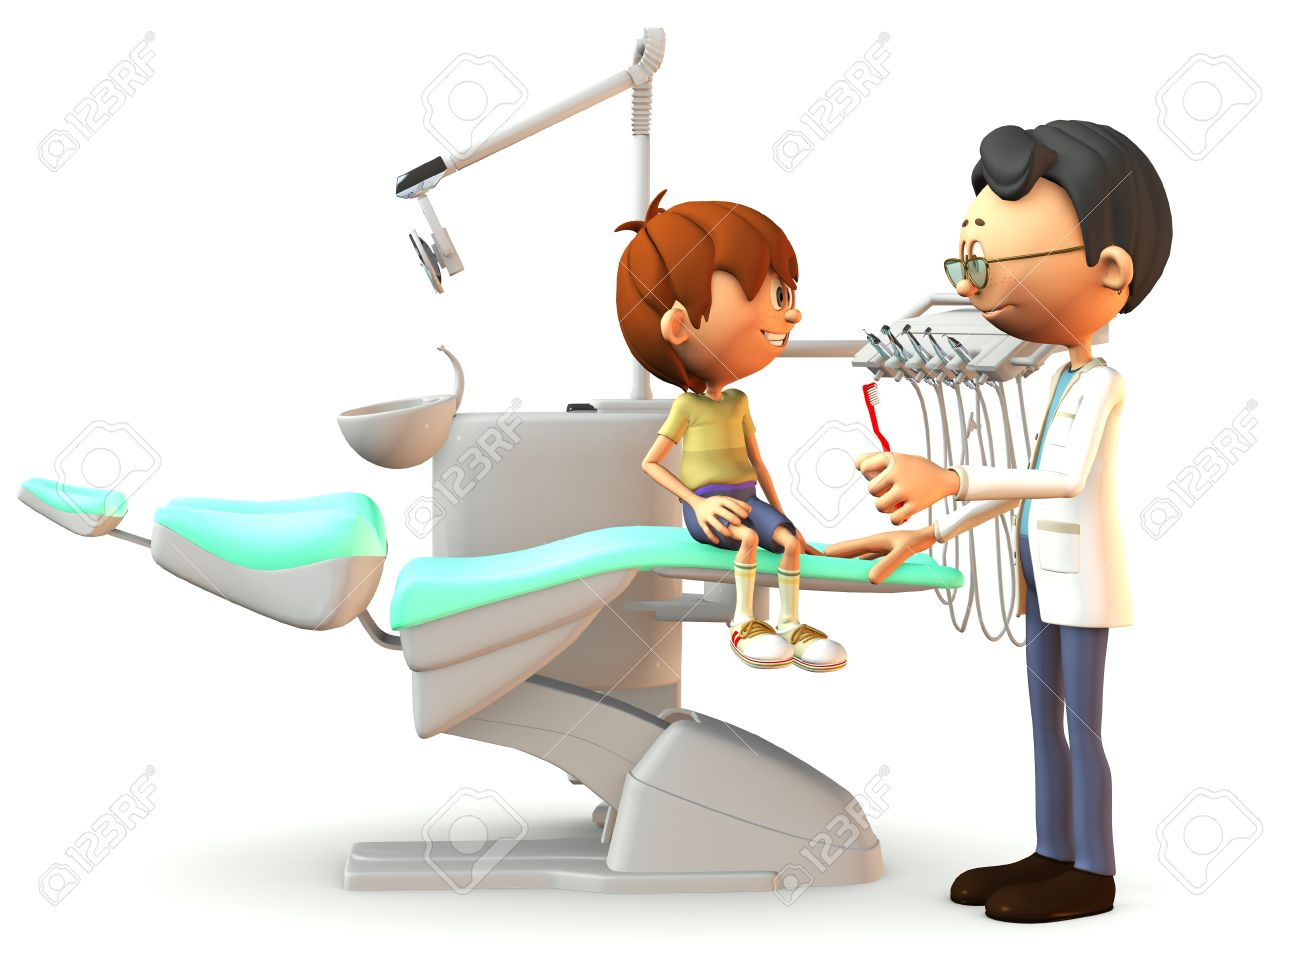 A young, smiling cartoon boy sitting on a dental chair. A dentist stands in front of him with a red toothbrush in his hand. White background. Stock Photo - 9549368